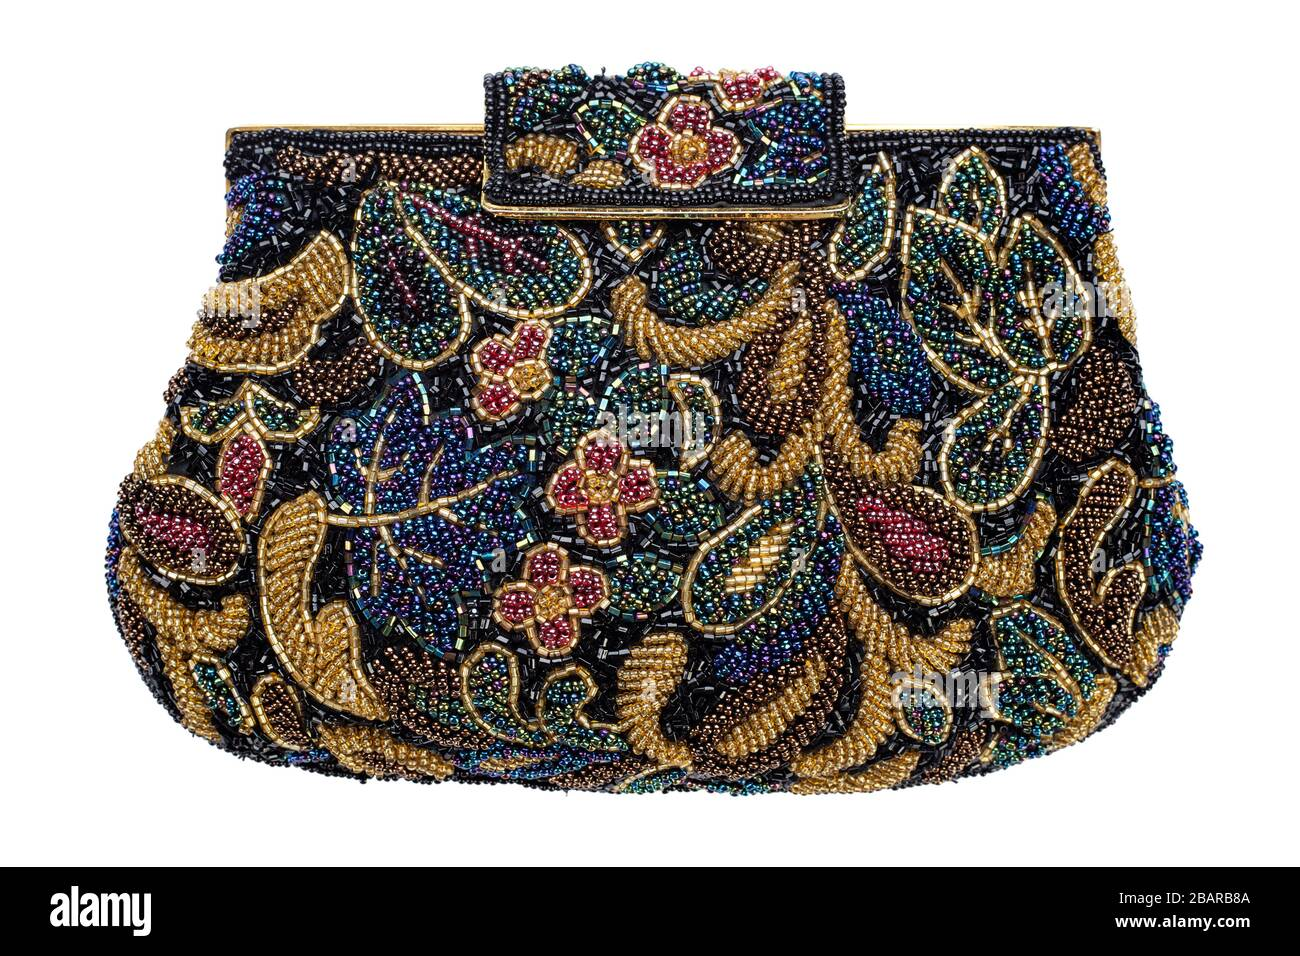 Iridescent Glass Beaded Ladies Bag Unique Ladies Bag with Beads Retro Black Womens Bag Embroidered Ladies Bag with Florals Motivs